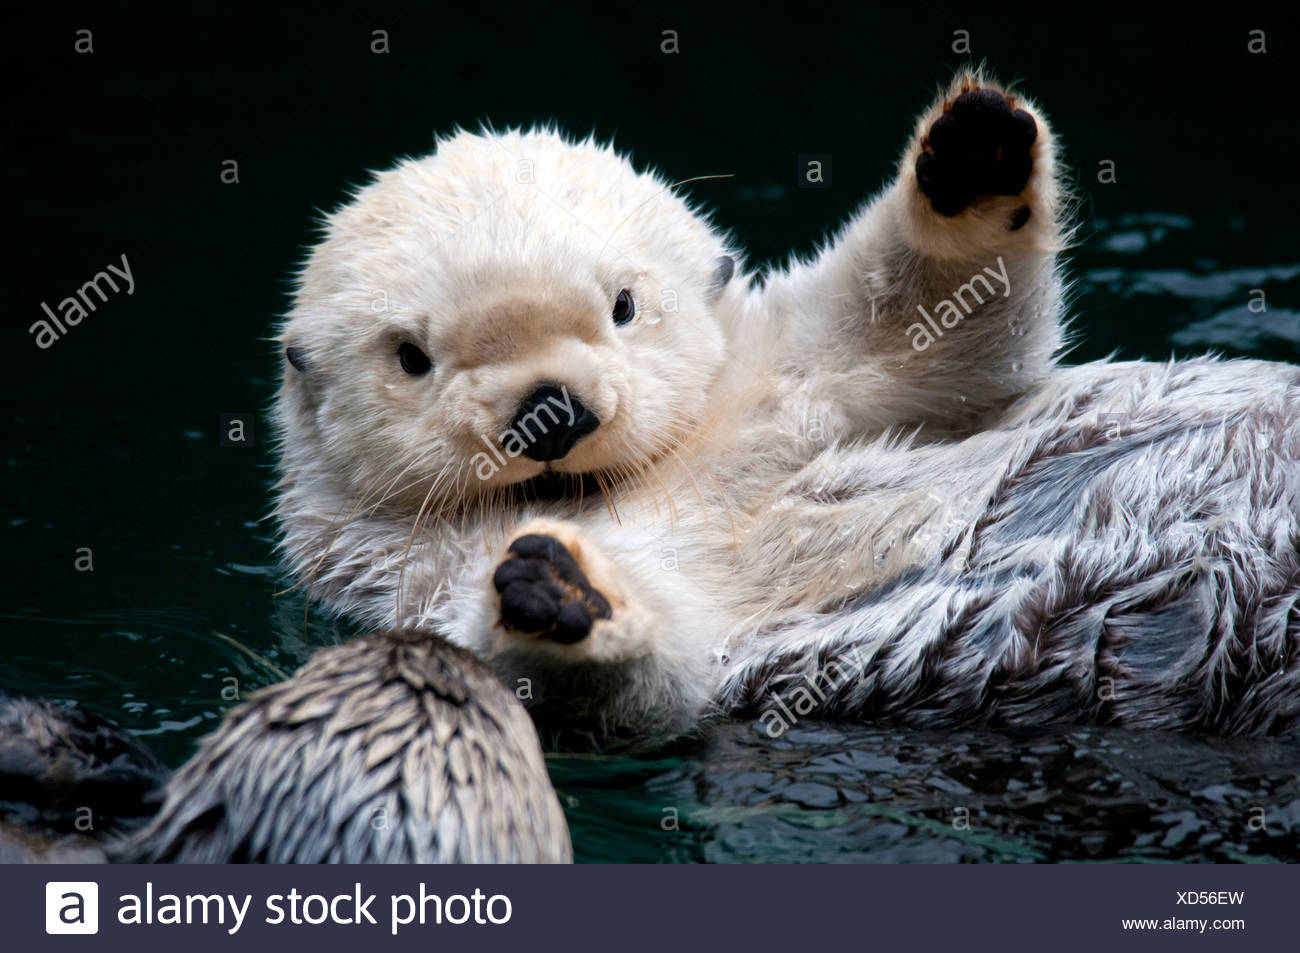 CAPTIVE Close up of two sea otters interacting at the Point Defiance Zoo, Tacoma, Washington USA - Stock Image